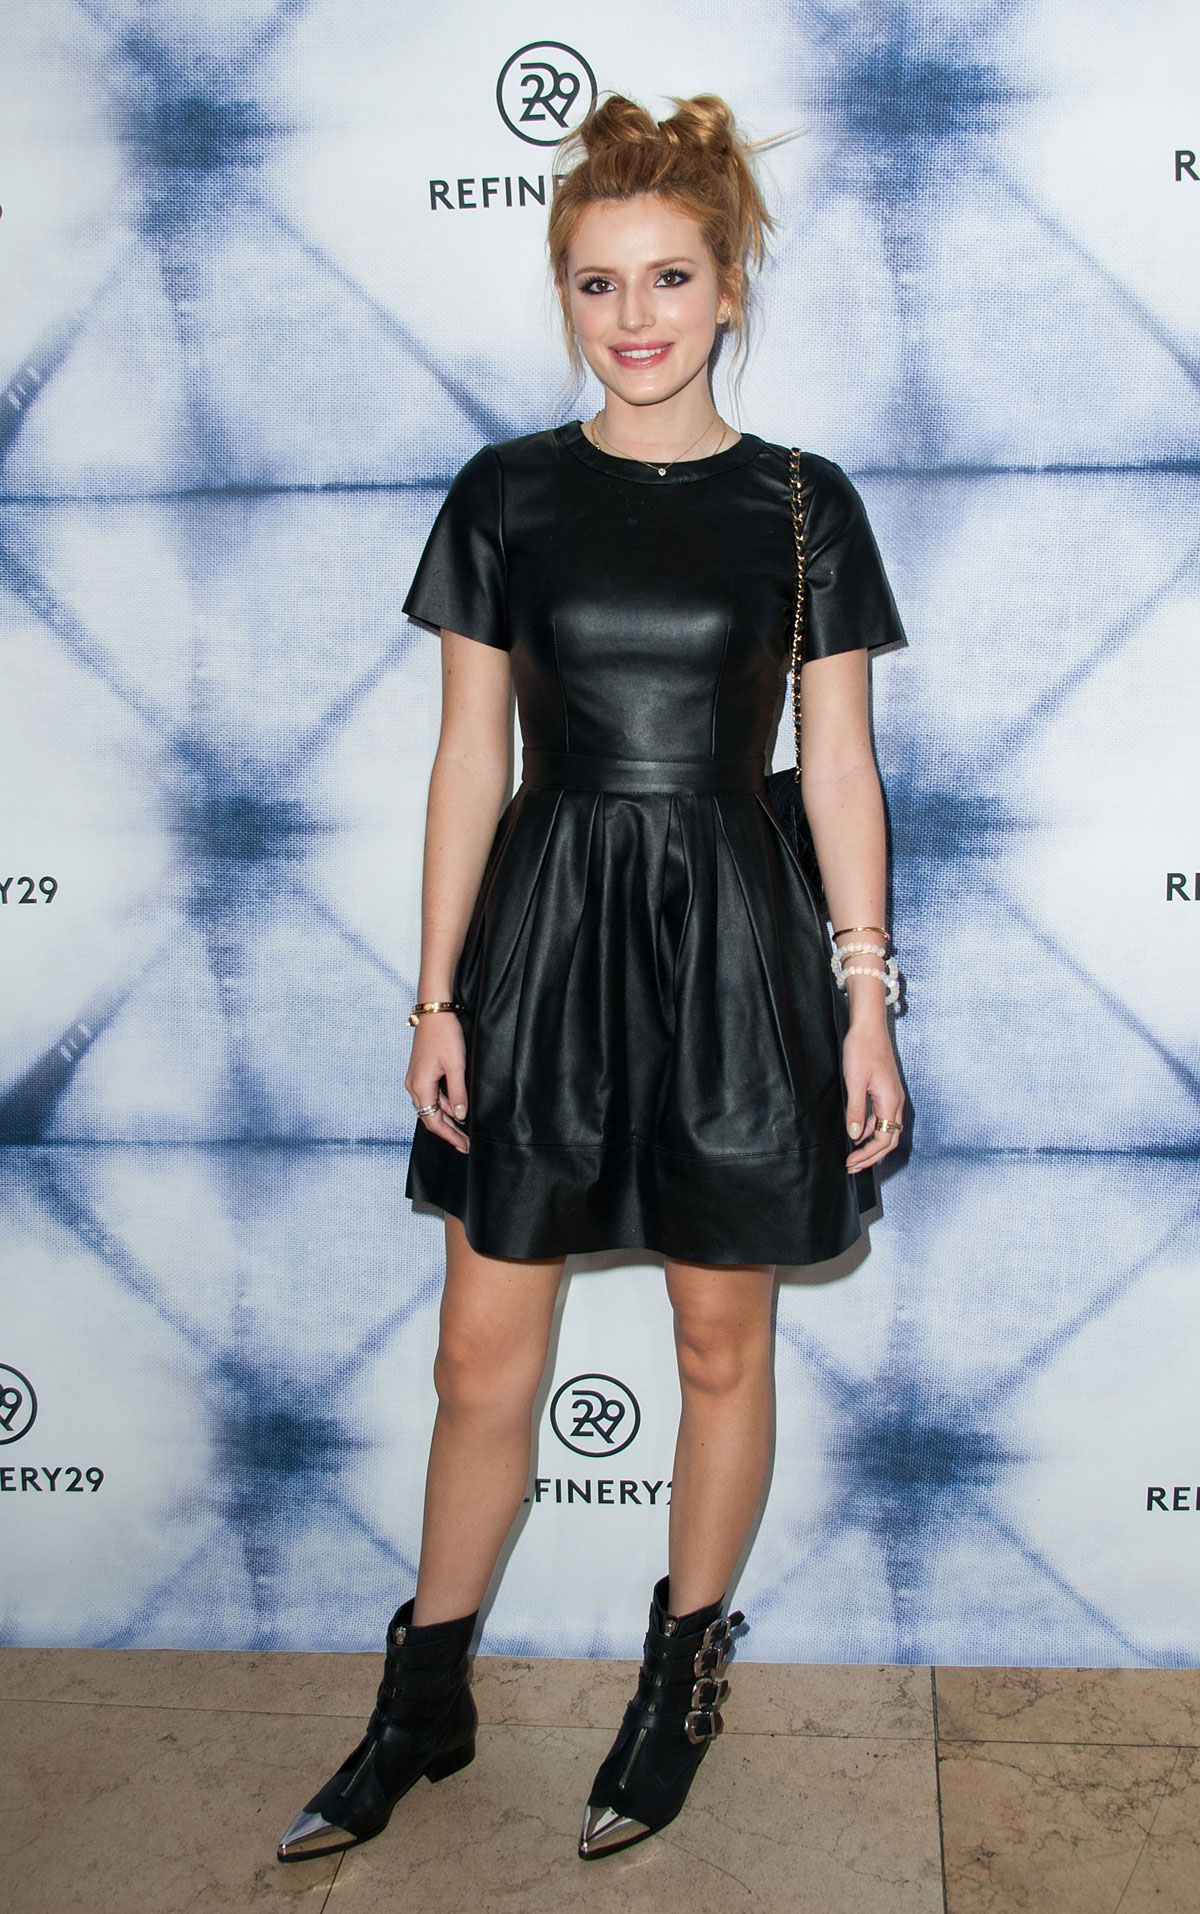 Bella Thorne attends Refinery29 Holiday Party